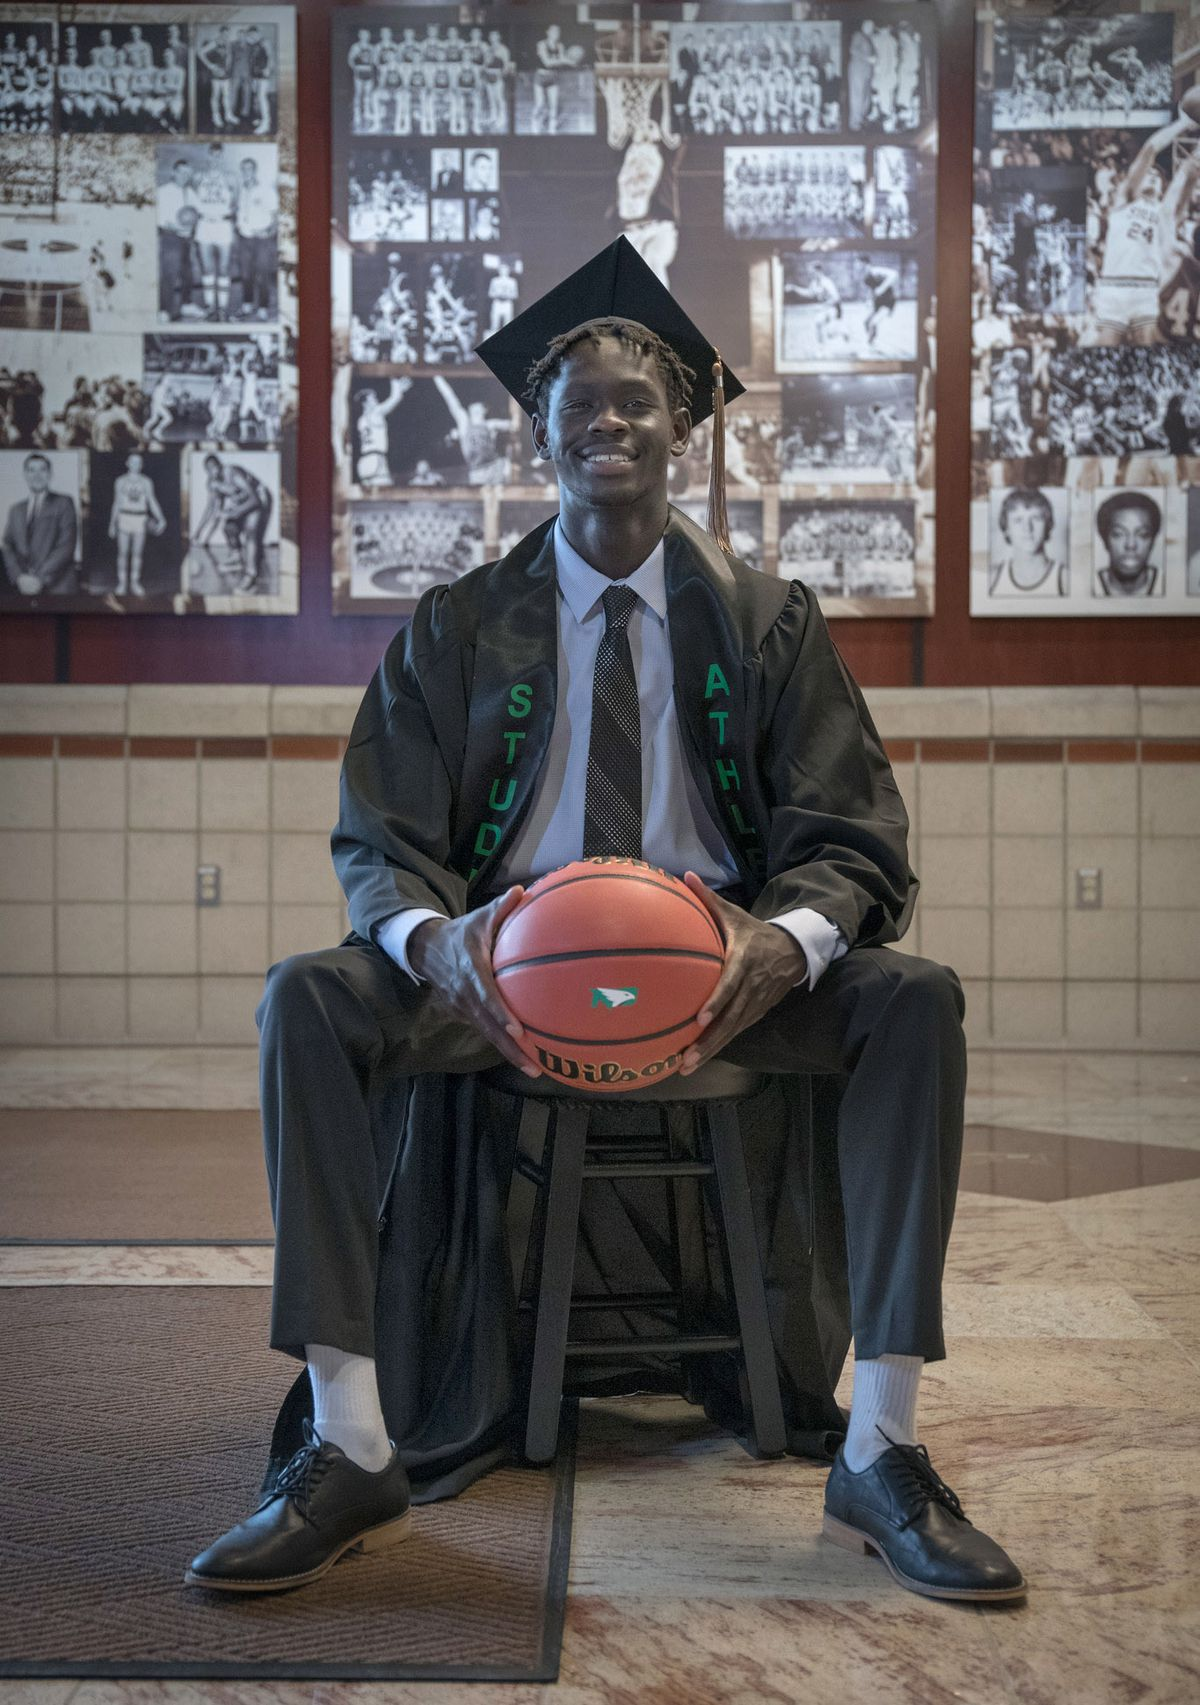 Bentiu Panoam of Anchorage wears his cap and gown after becoming the first person froom his family to graduate from college in May 2021. Panoam, who attended the University of North Dakota on a basketball scholarship, is the son of Sudanese refugees and one of 10 children in his family. (Photo by Crystal Saddler)